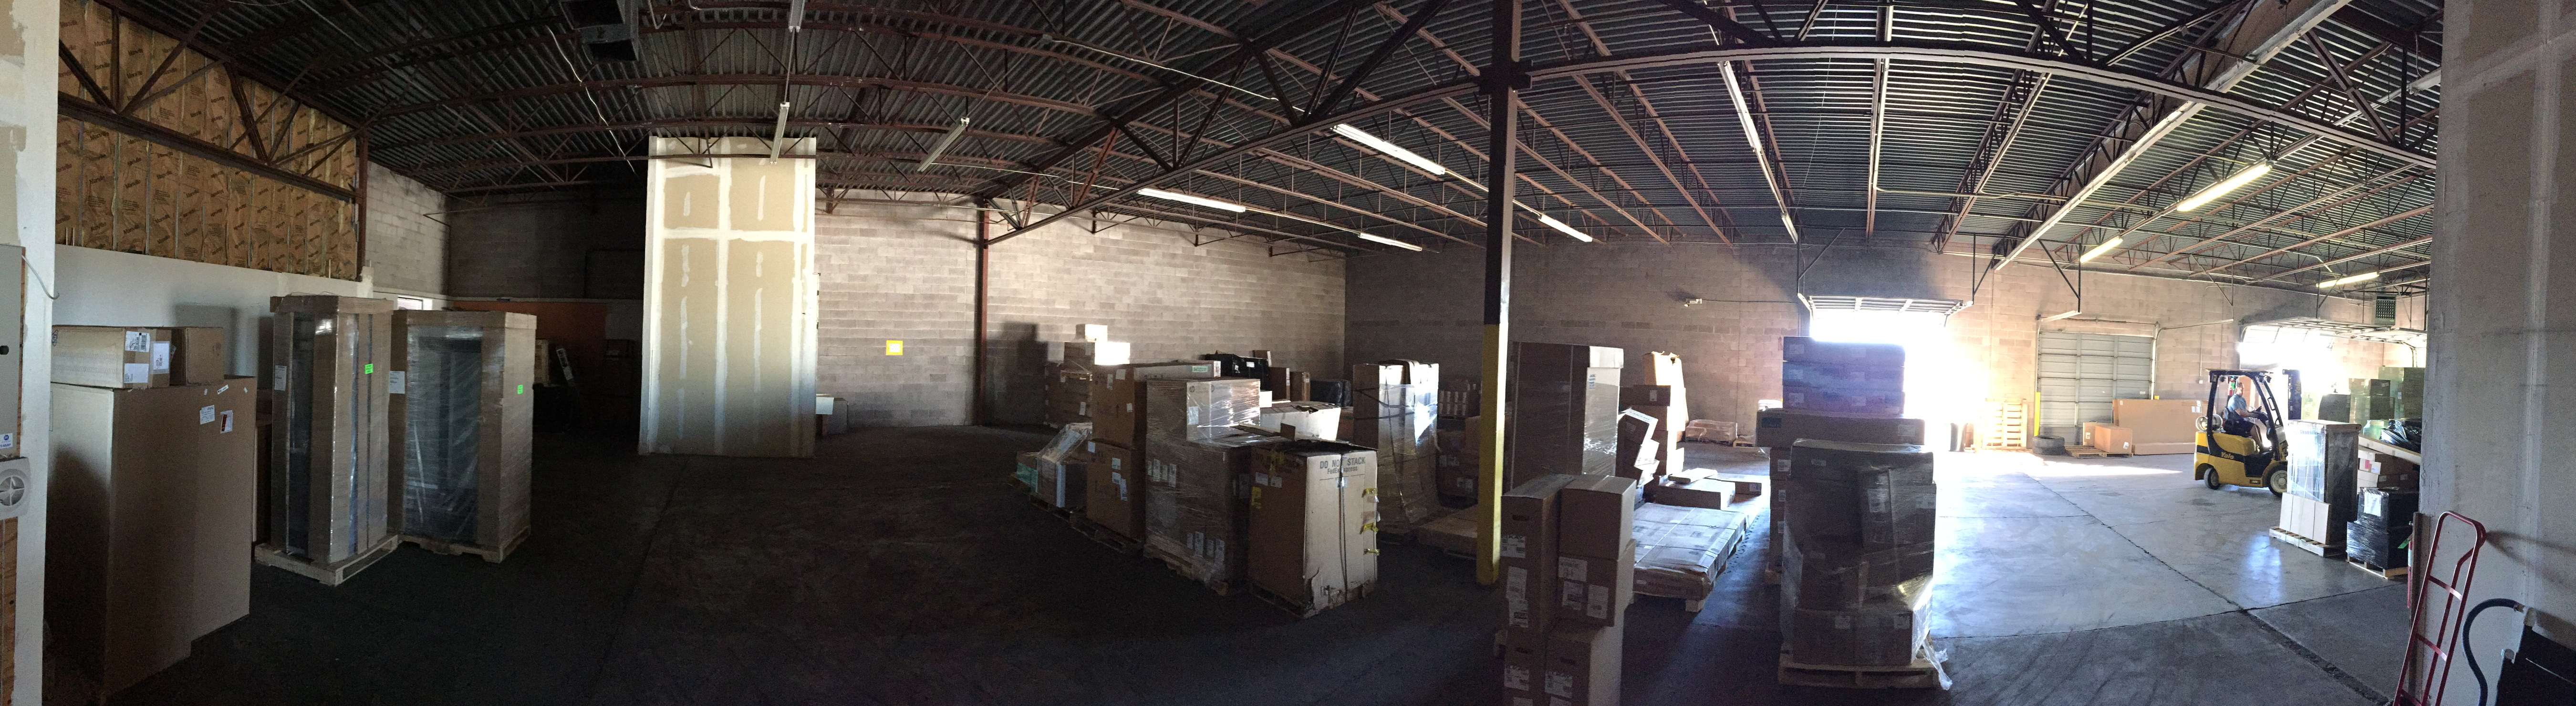 Warehouse Pano Facing Southeast